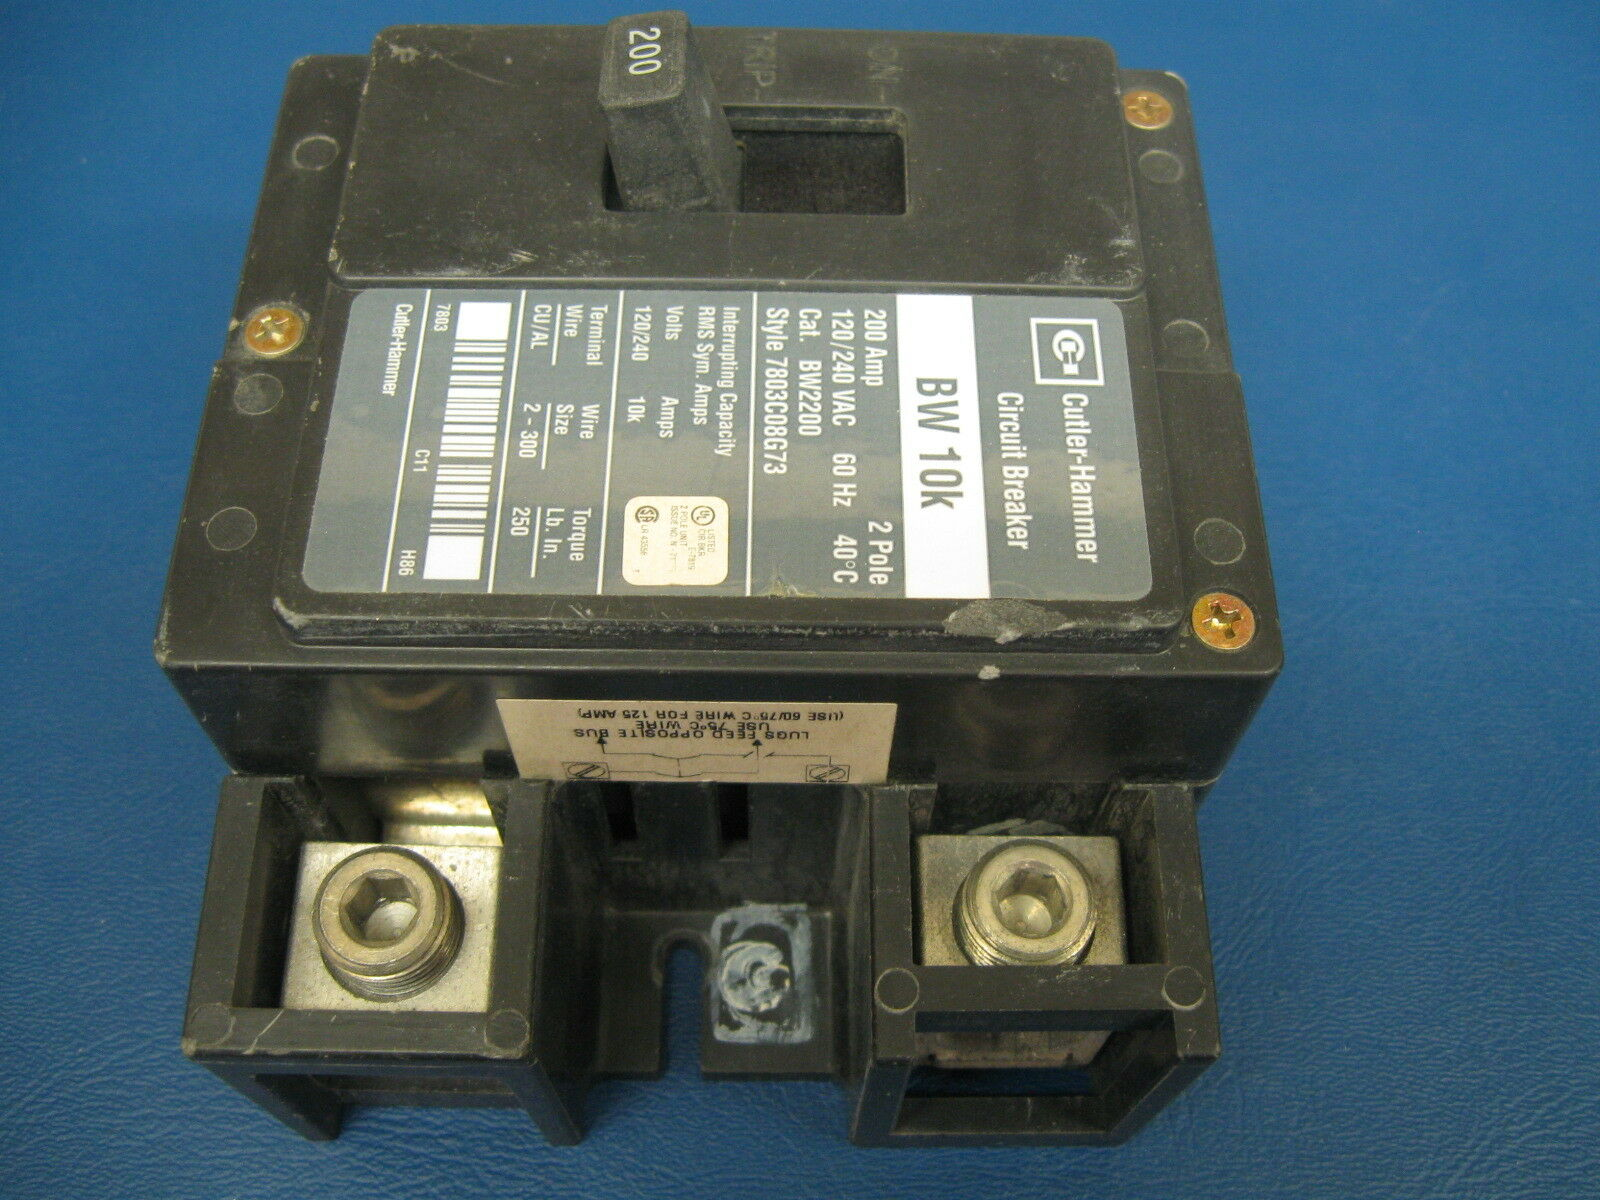 200 Amp 2 Pole Cutler Hammer Eaton Bw2200 Main Breaker Same As 200amp Circuit With 60amp Generator Norton Secured Powered By Verisign